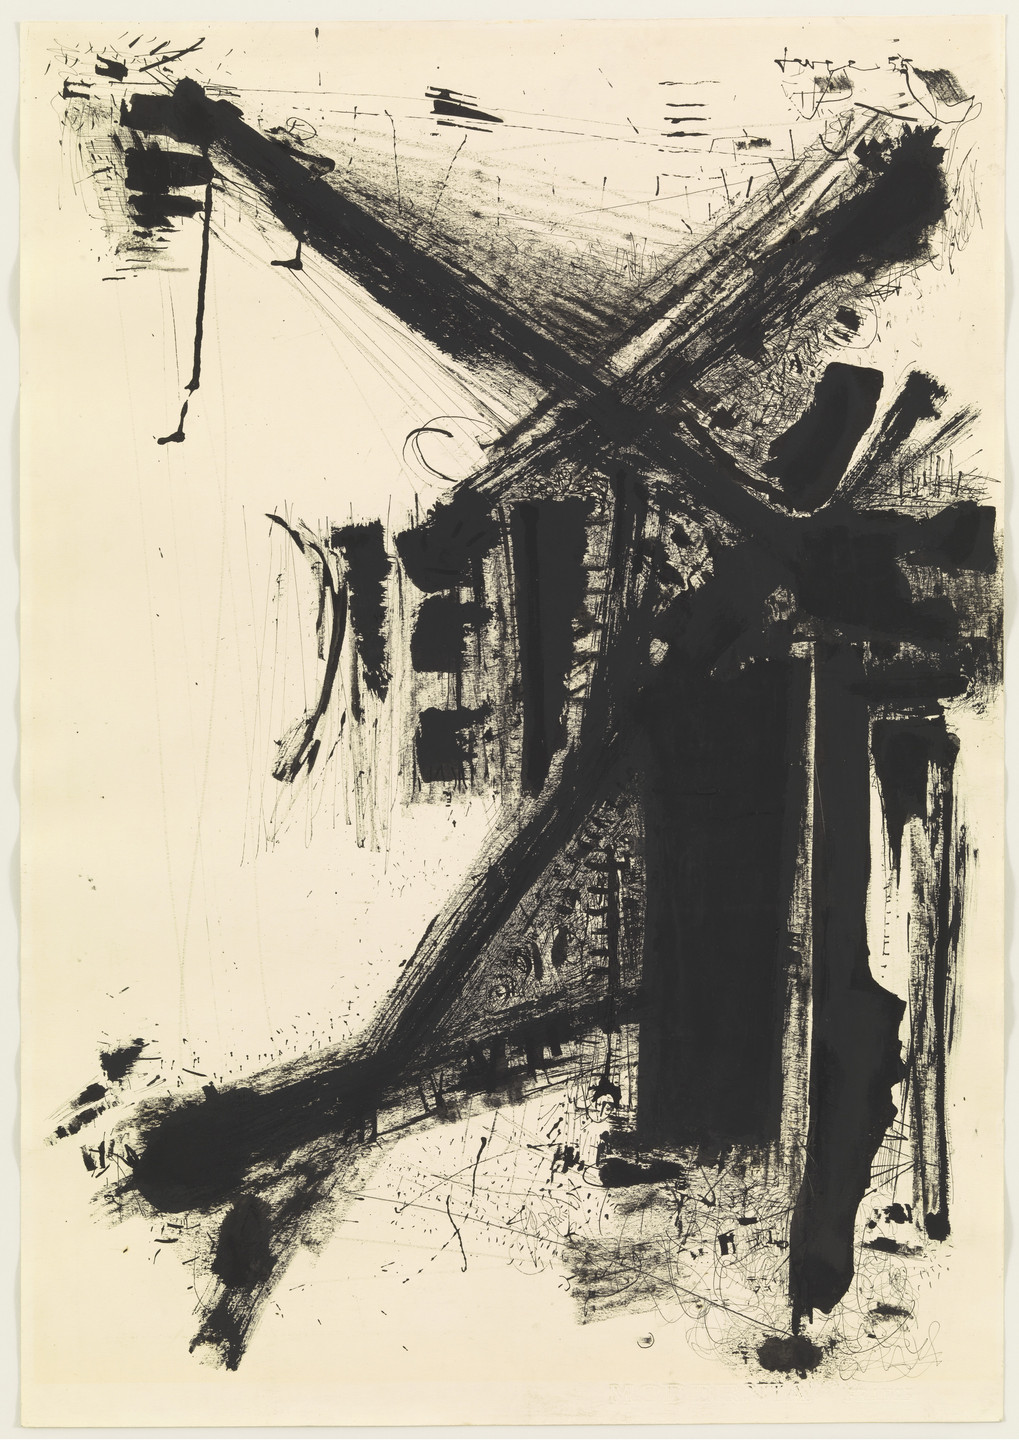 John Levee. Drawing. 1955